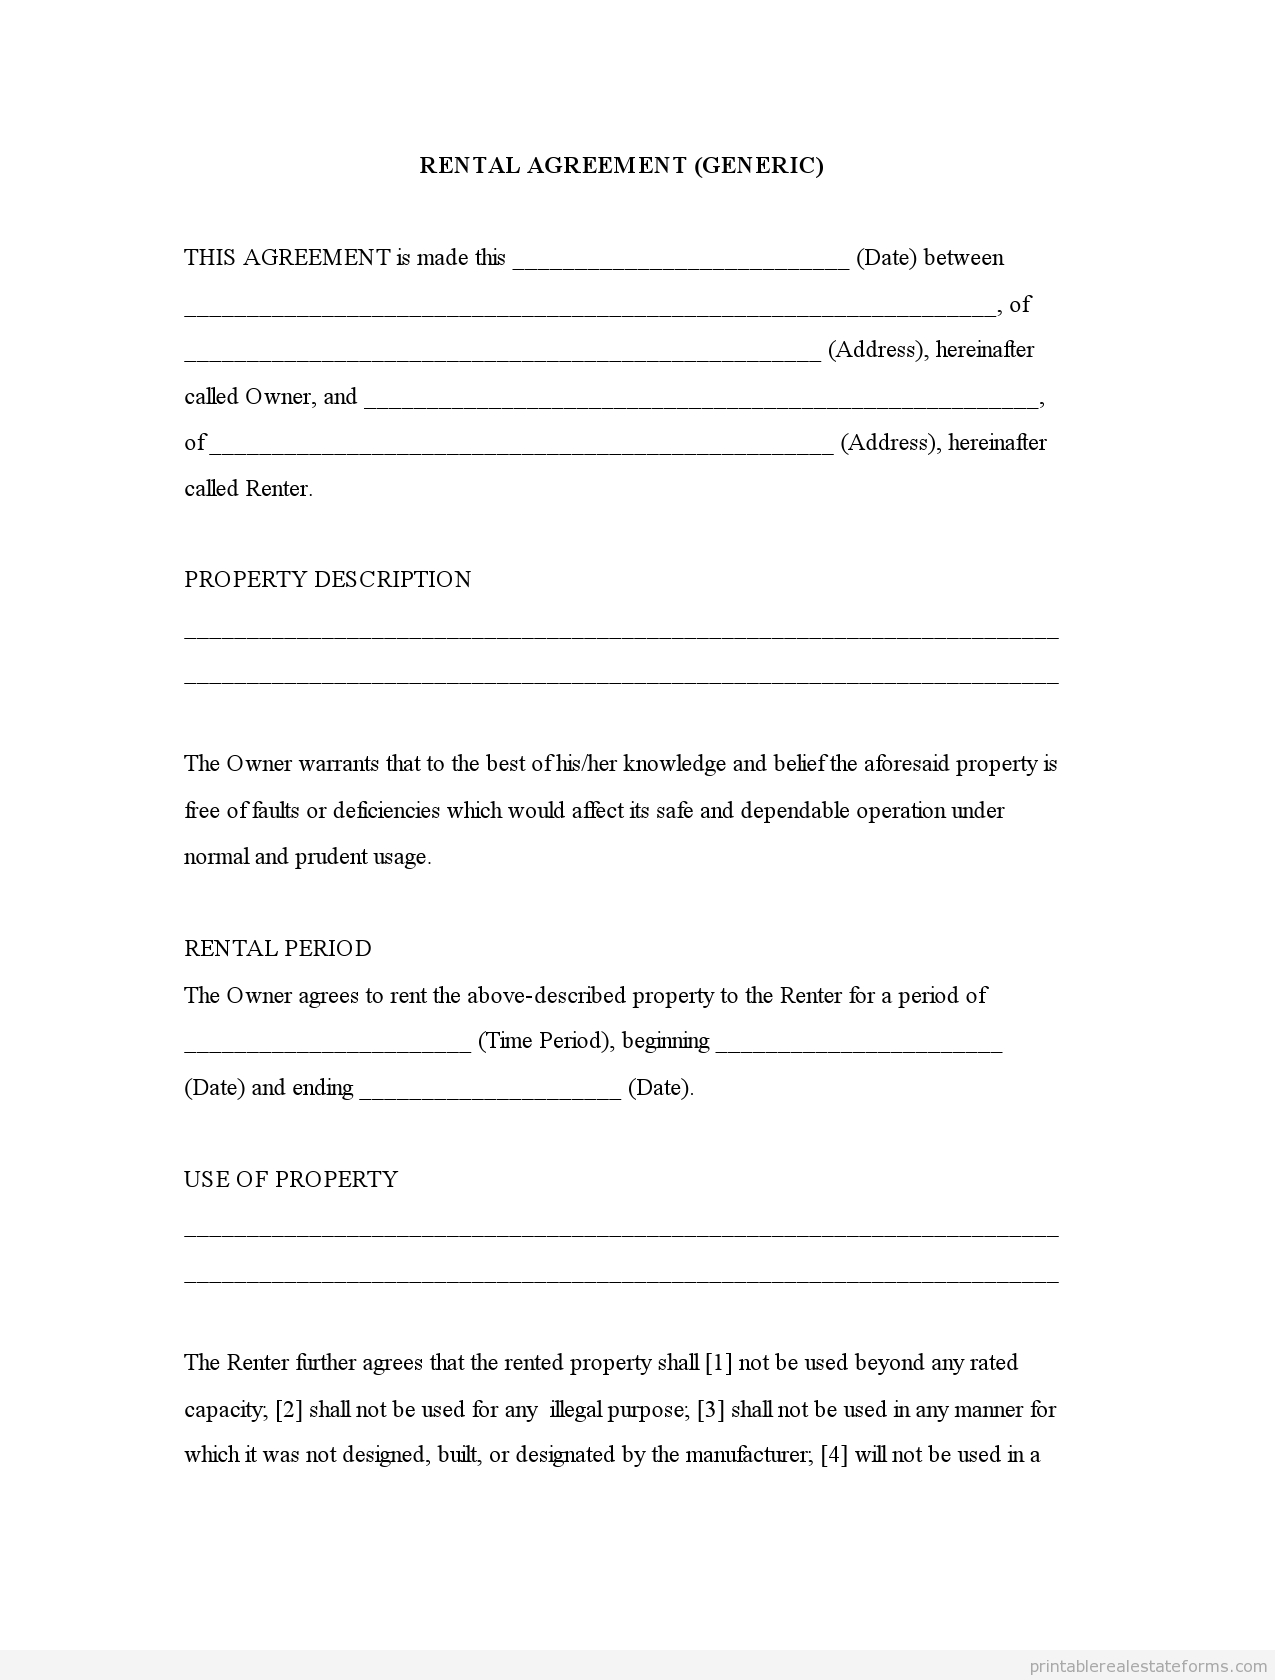 New Free Printable Residential Lease Agreement | Downloadtarget